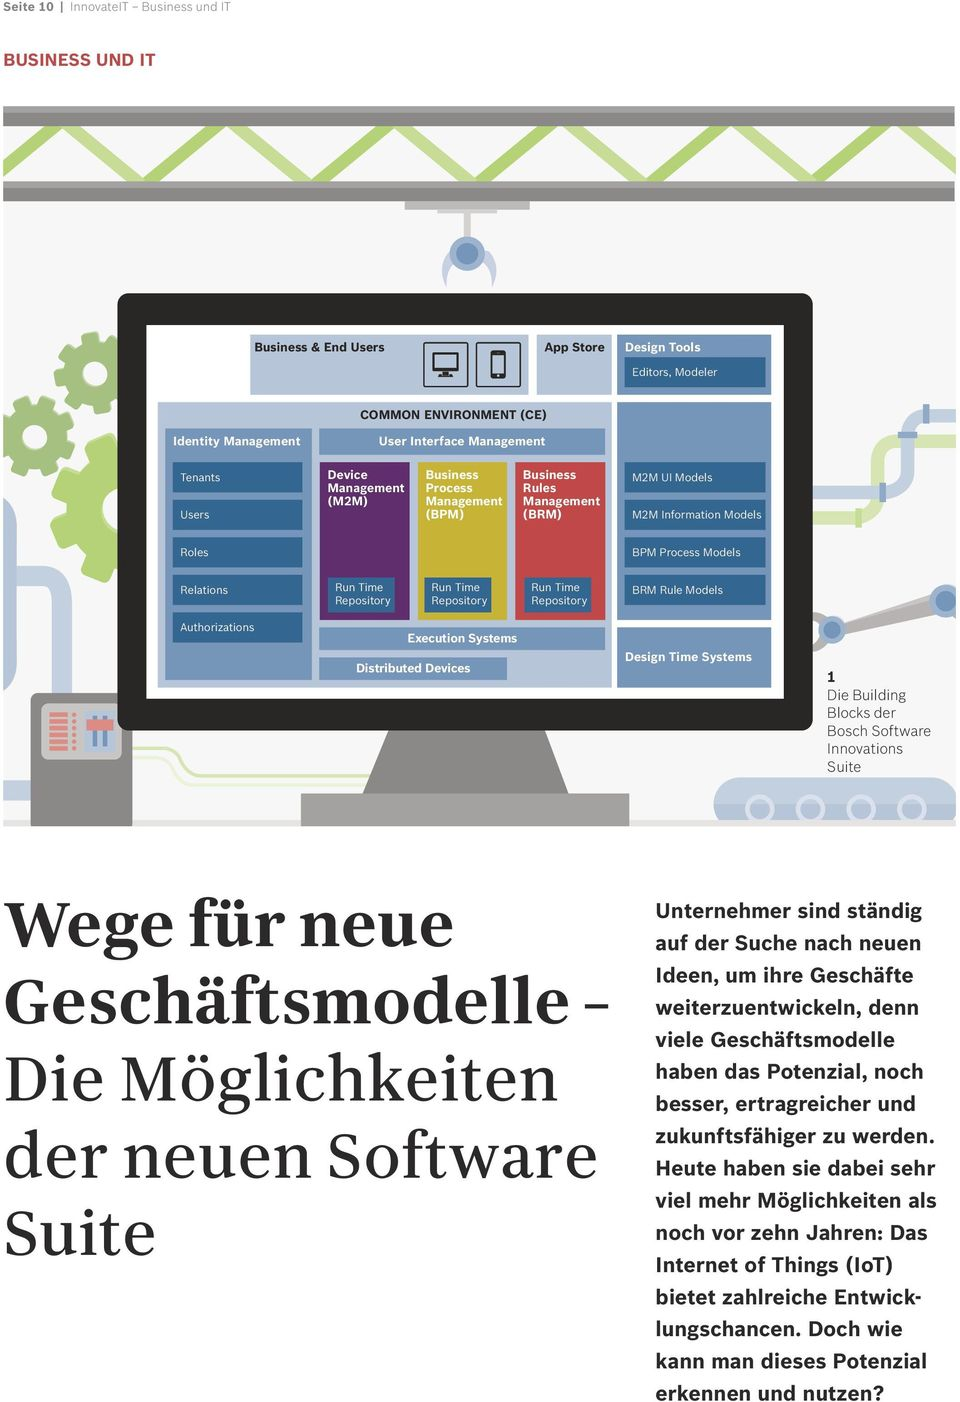 Repository Run Time Repository BRM Rule Models Authorizations Execution Systems Distributed Devices Design Time Systems 1 Die Building Blocks der Bosch Software Innovations Suite Wege für neue